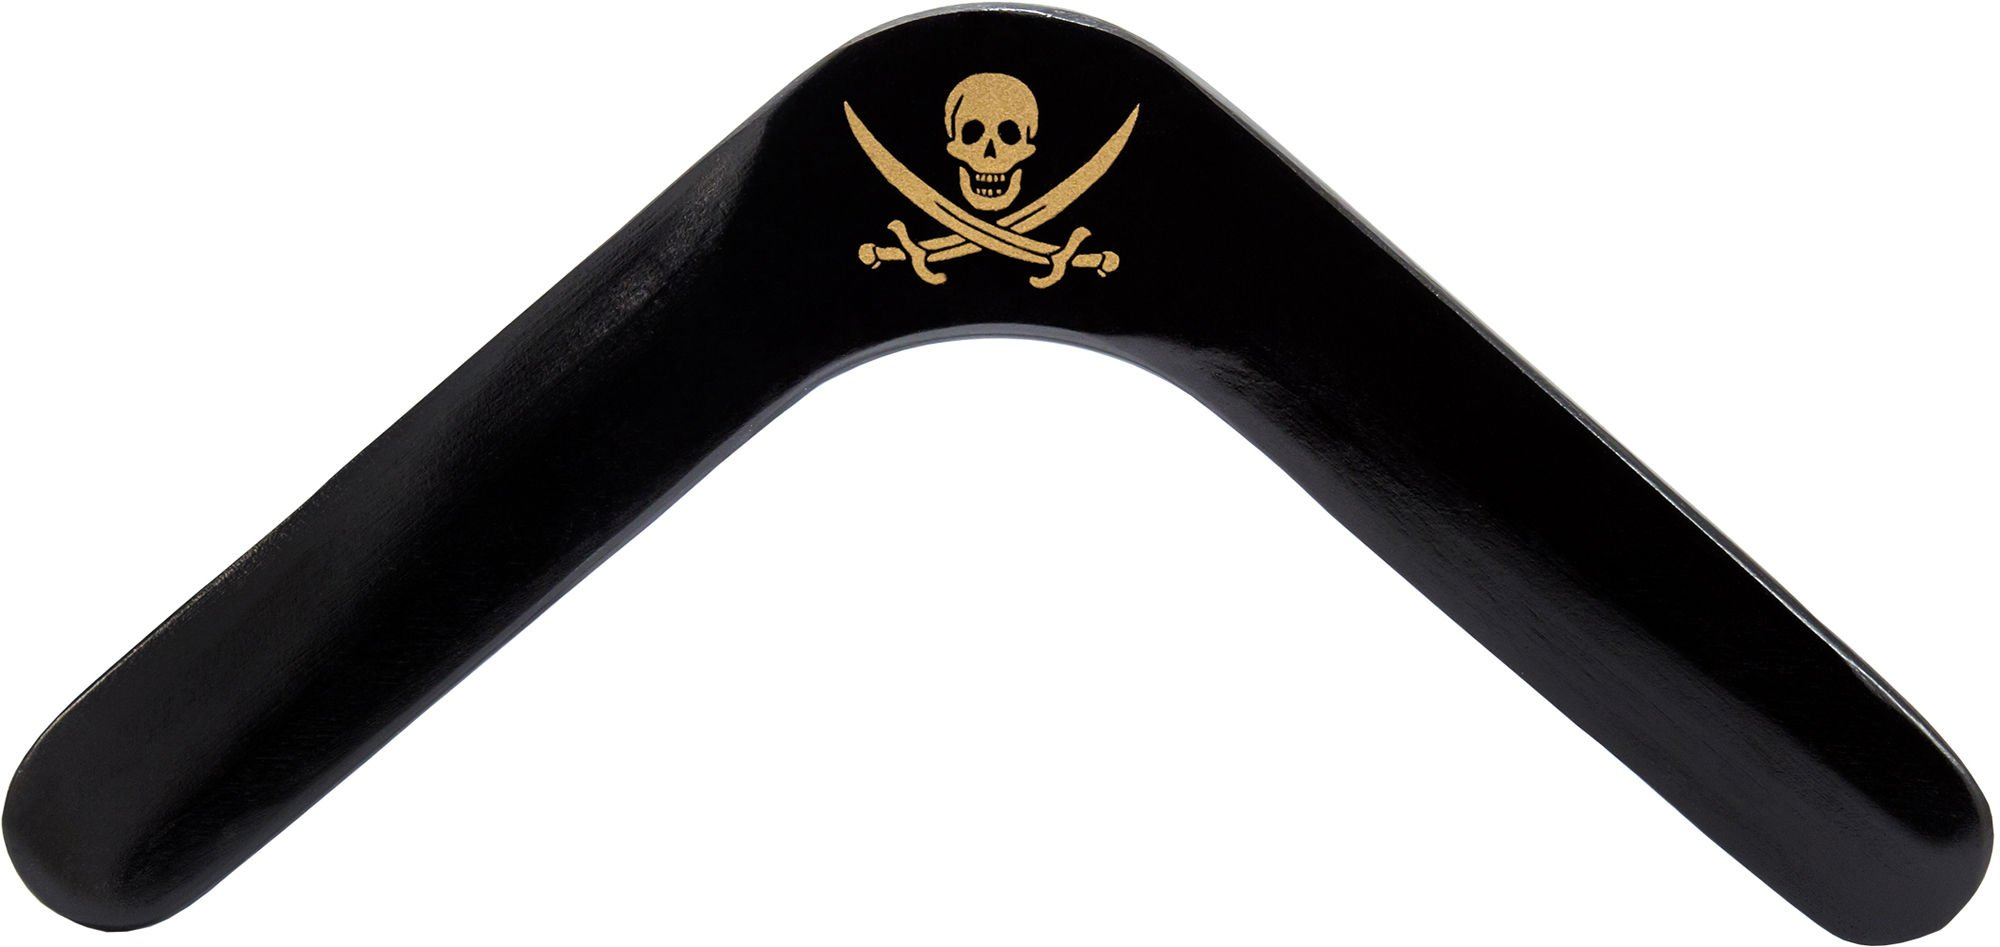 Channel Craft Boomerang - The Calico Jack game accessories